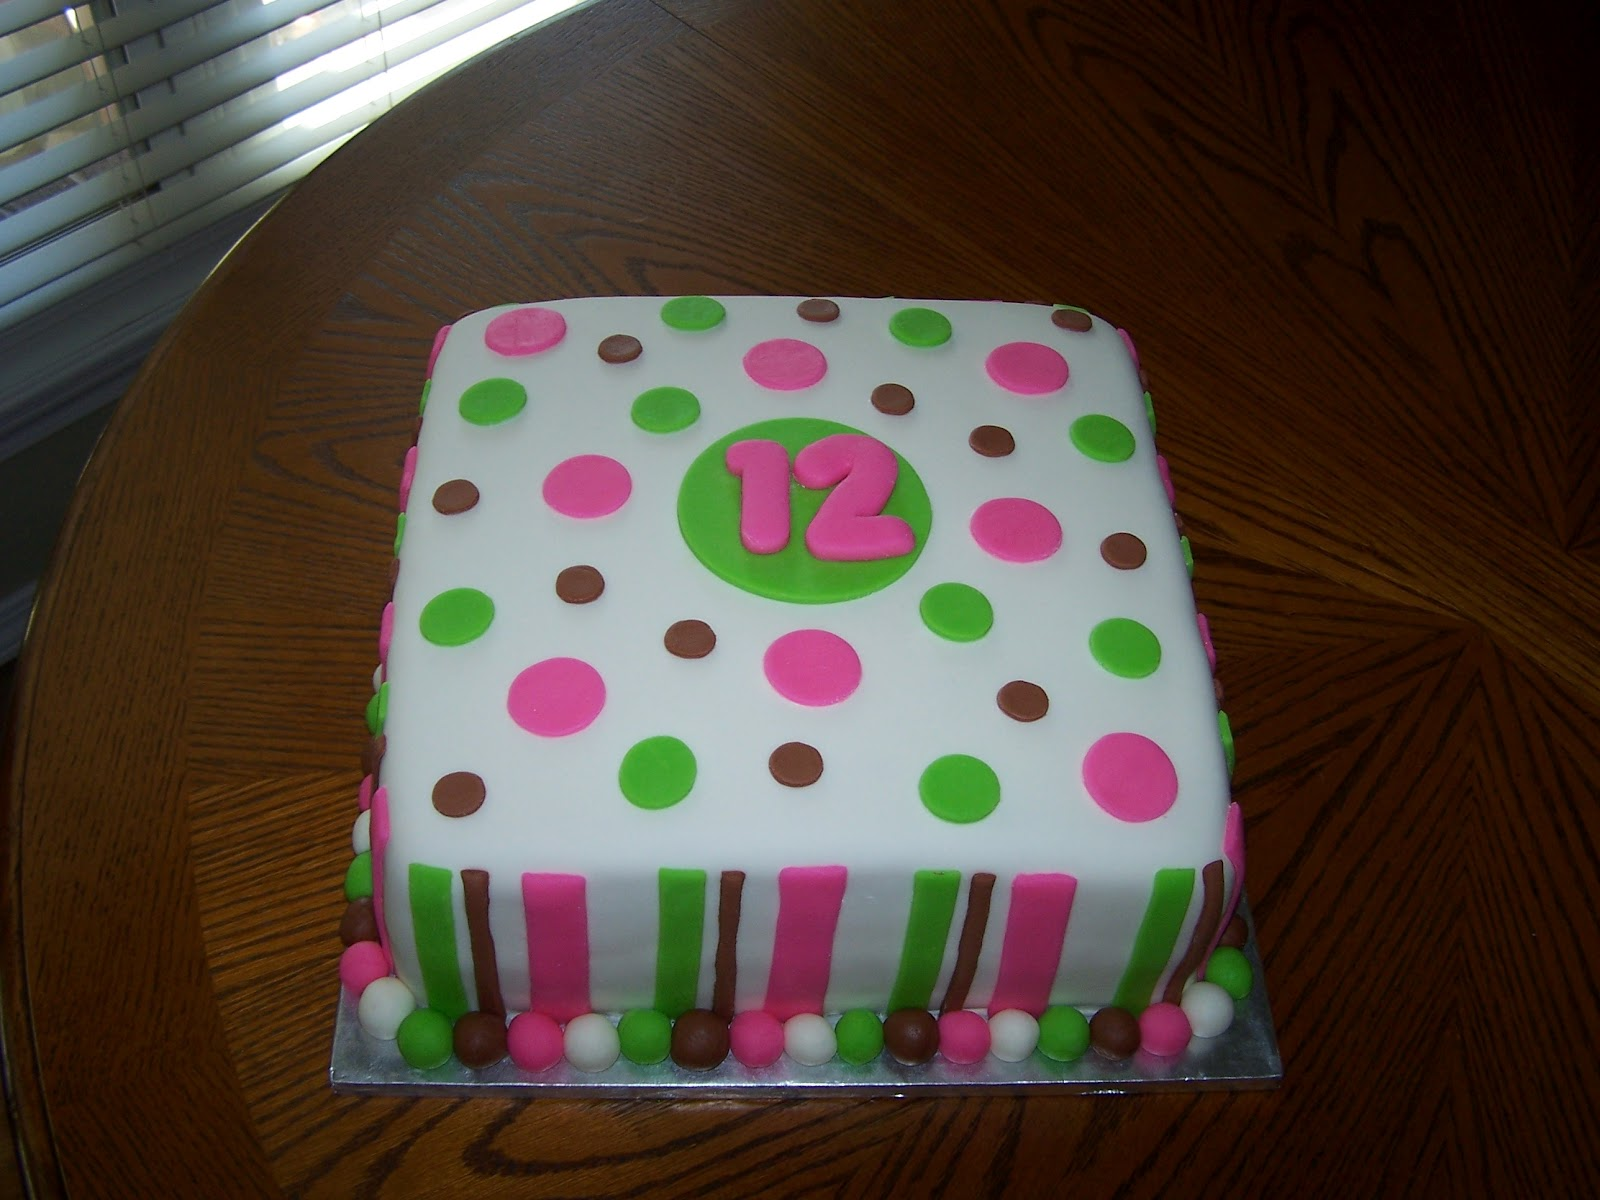 12 Year Old Birthday Cake With Strips And Polka Dots